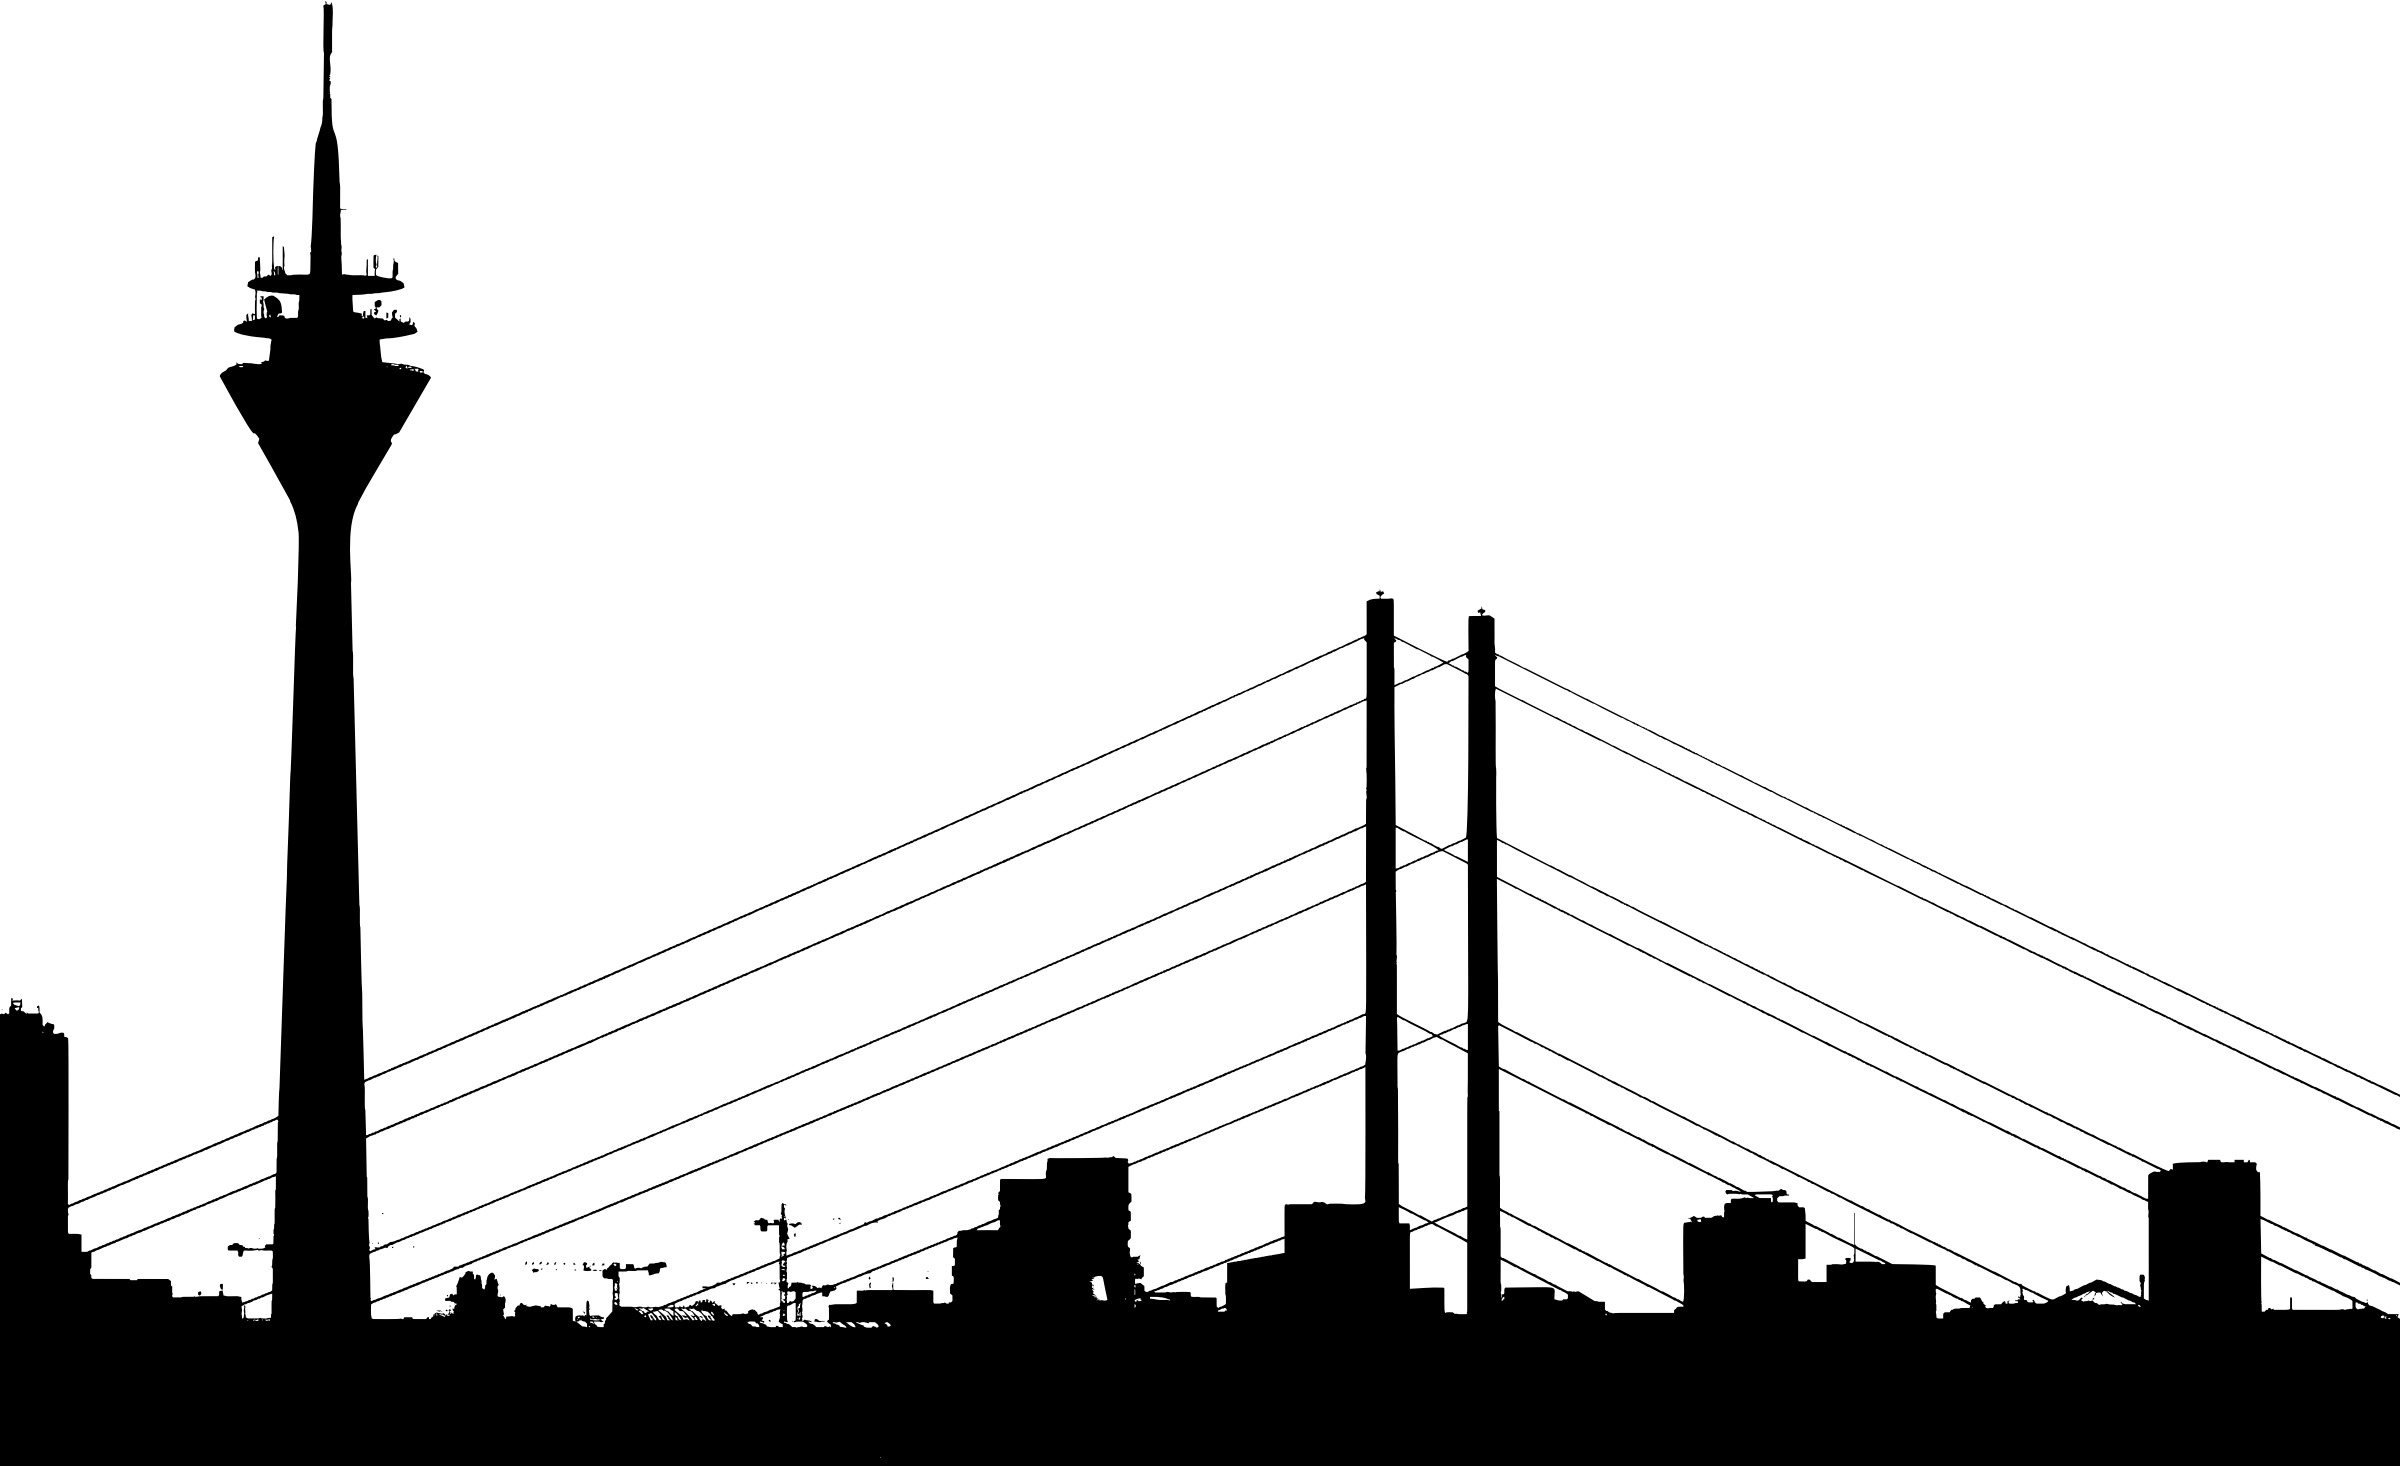 City Silhouette Vector Clipart Image